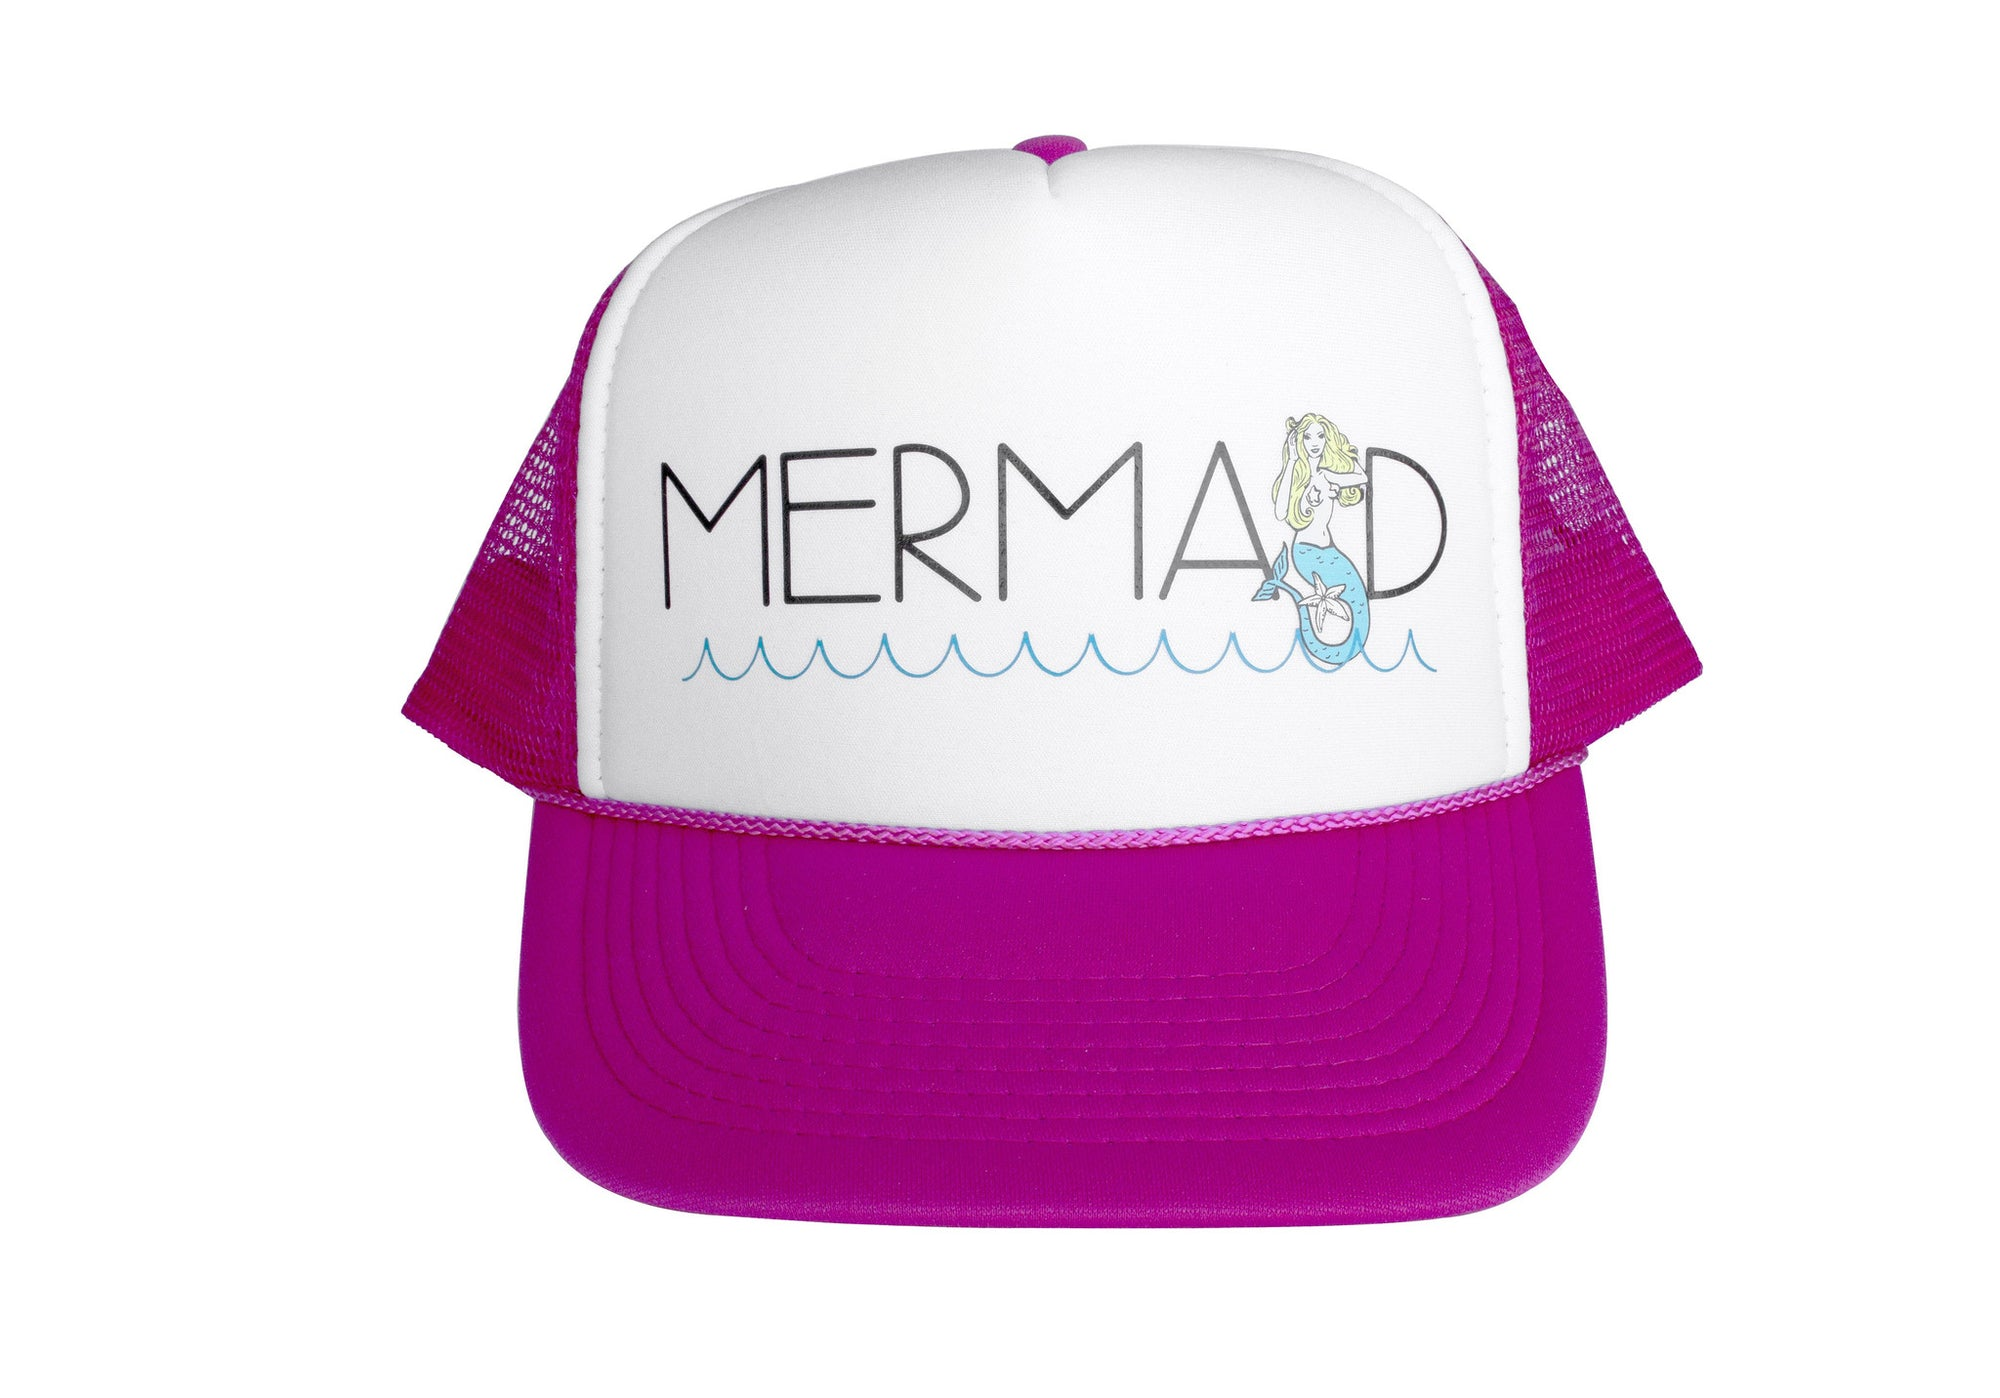 Mermaid - Goddess of the Sea